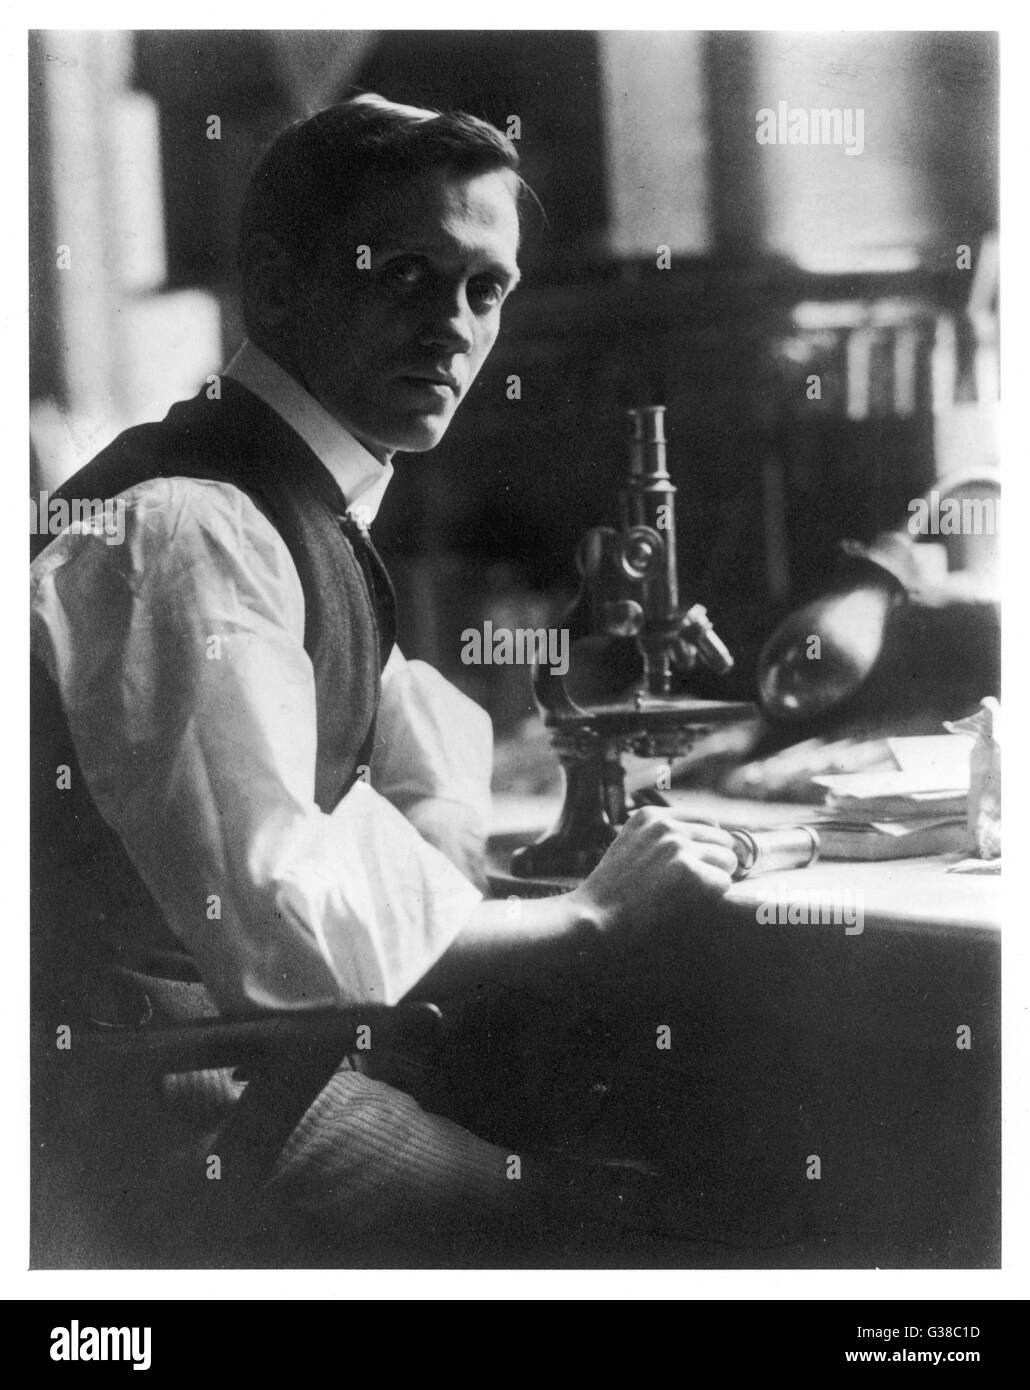 SIR Alexander Fleming - bactériologiste écossais à son bureau avec son microscope. Date : 1881 Photo Stock